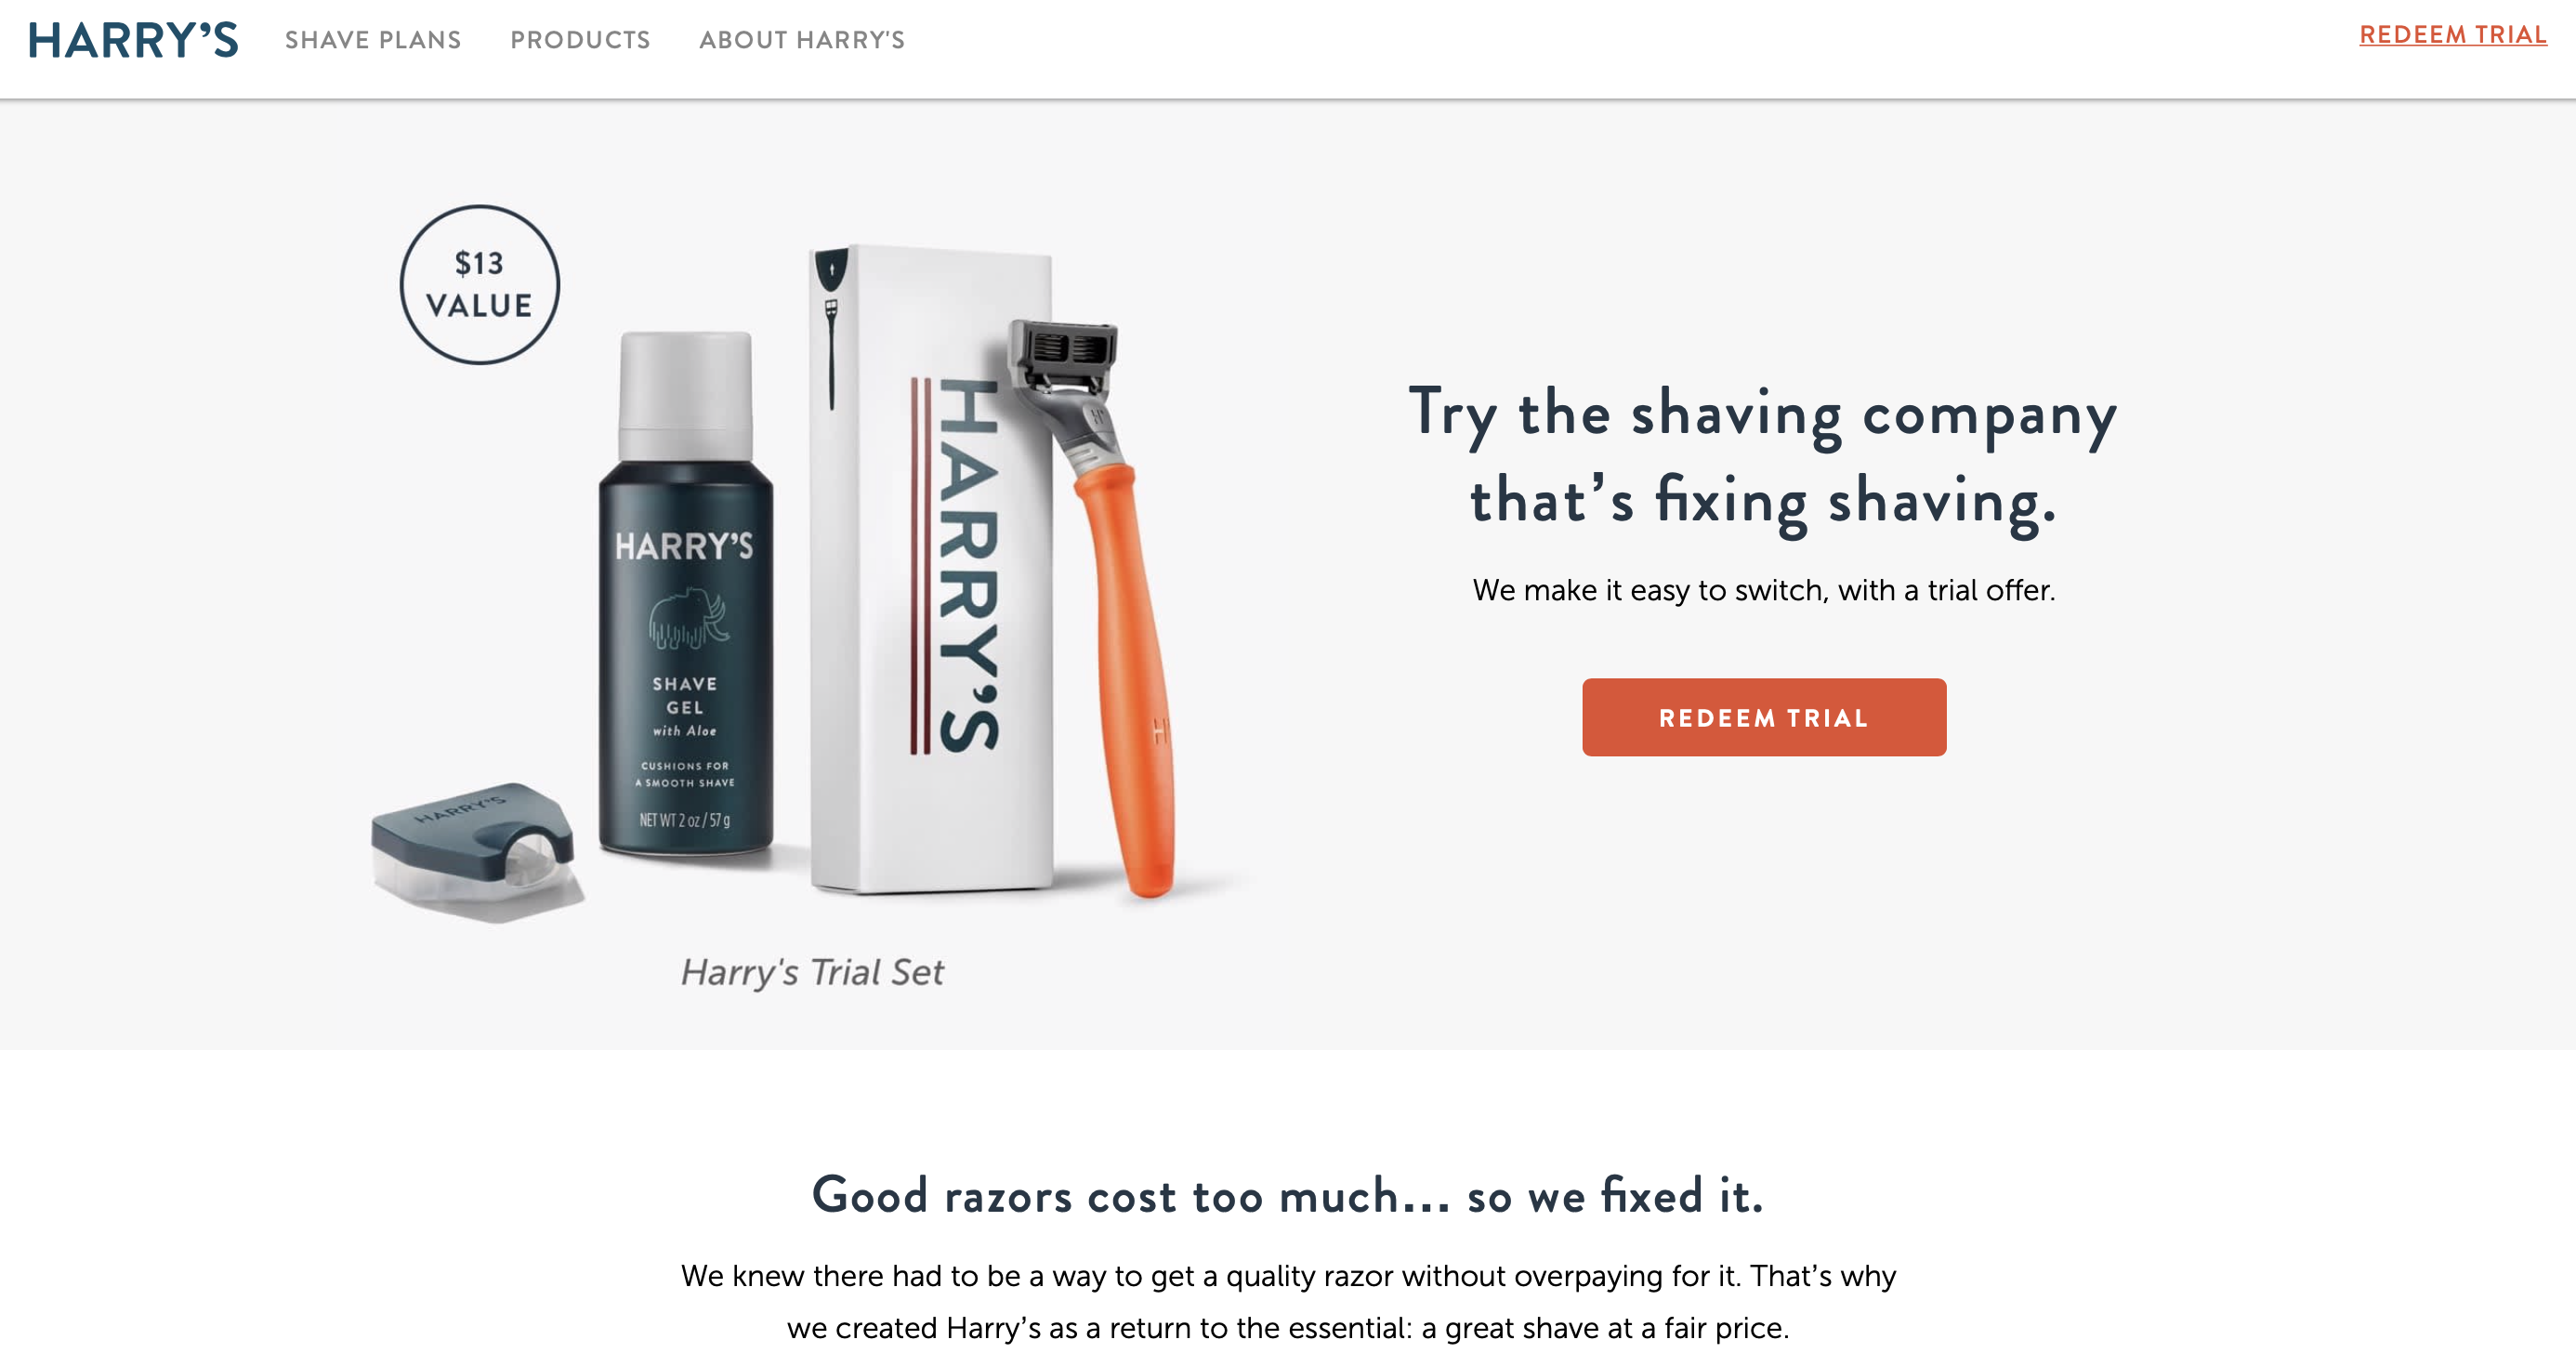 How Web-Based Startup Harry's Used Storytelling To Shake Up the Men's Razor Industry